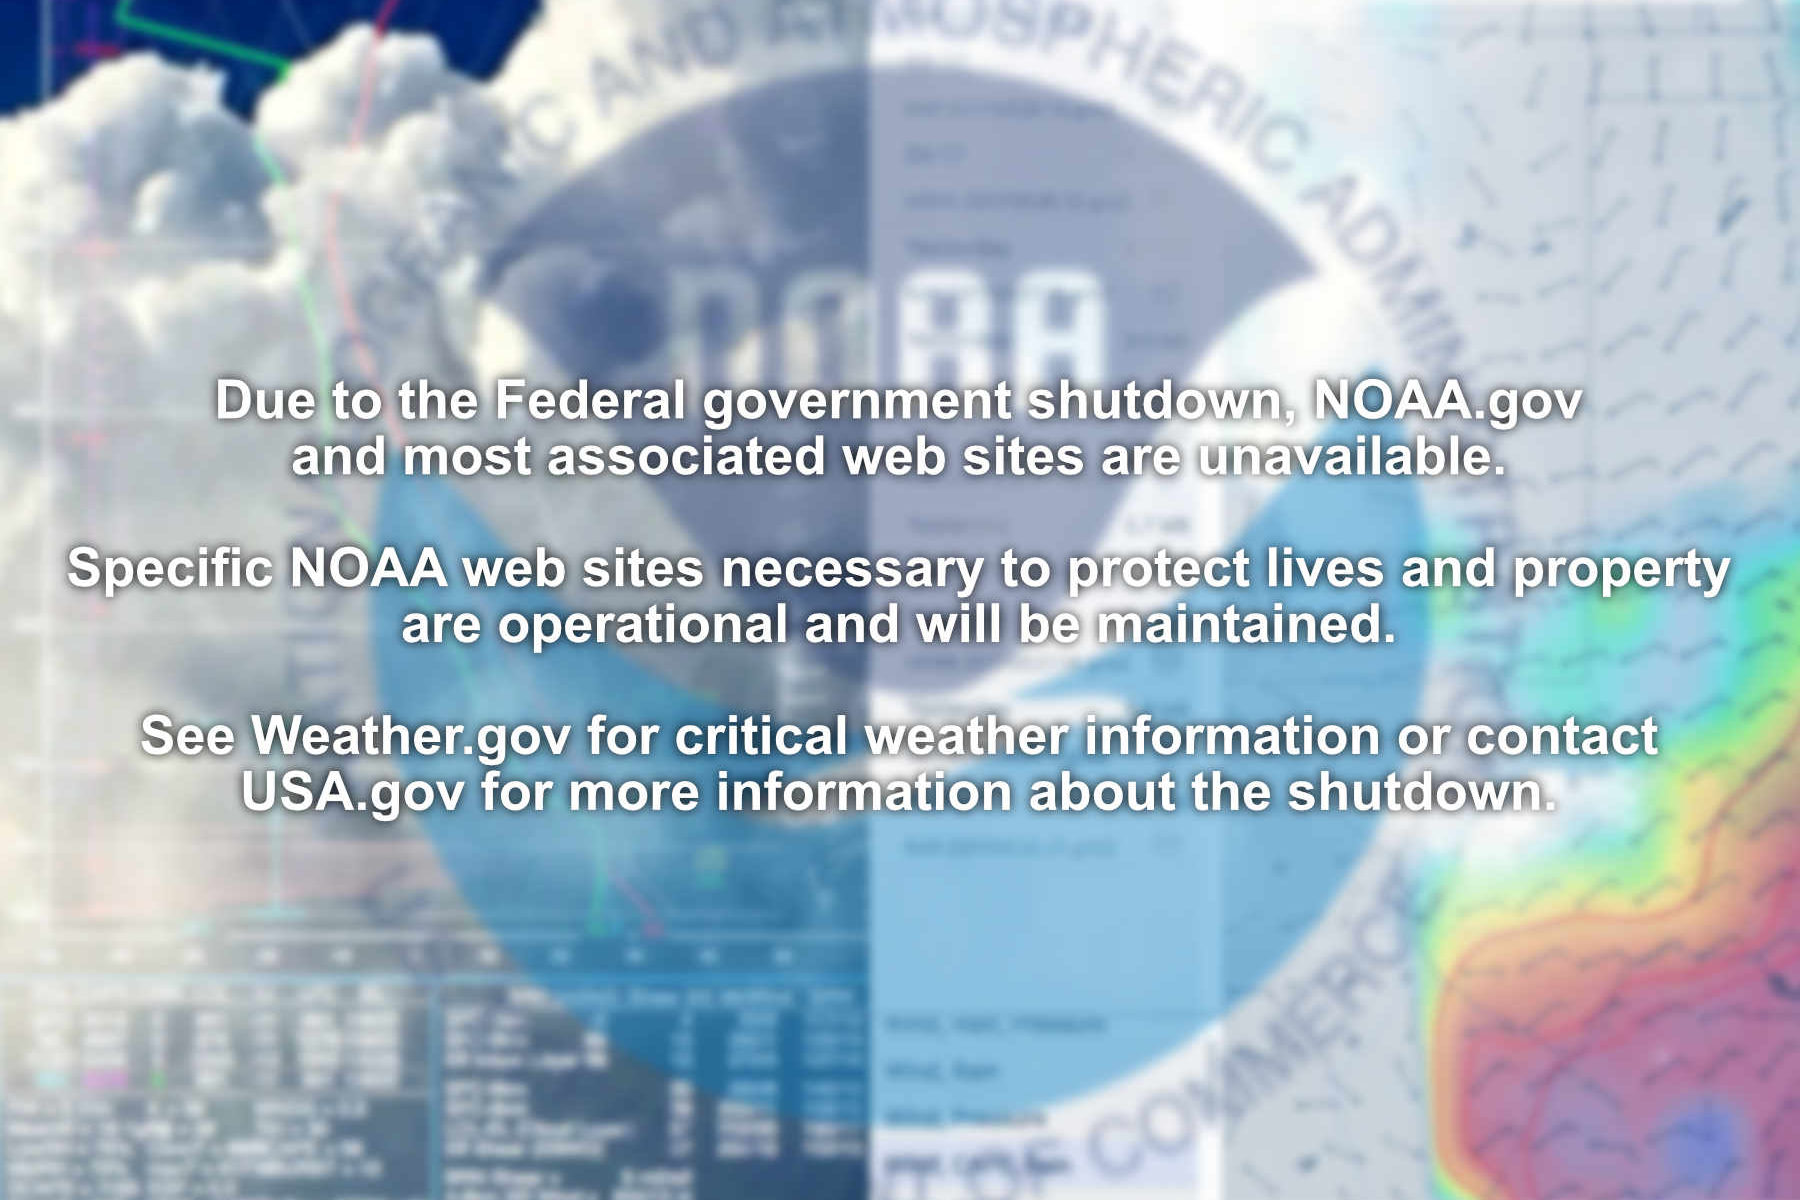 NOAA Shutdown - Government shutdown message on noaa.govs website